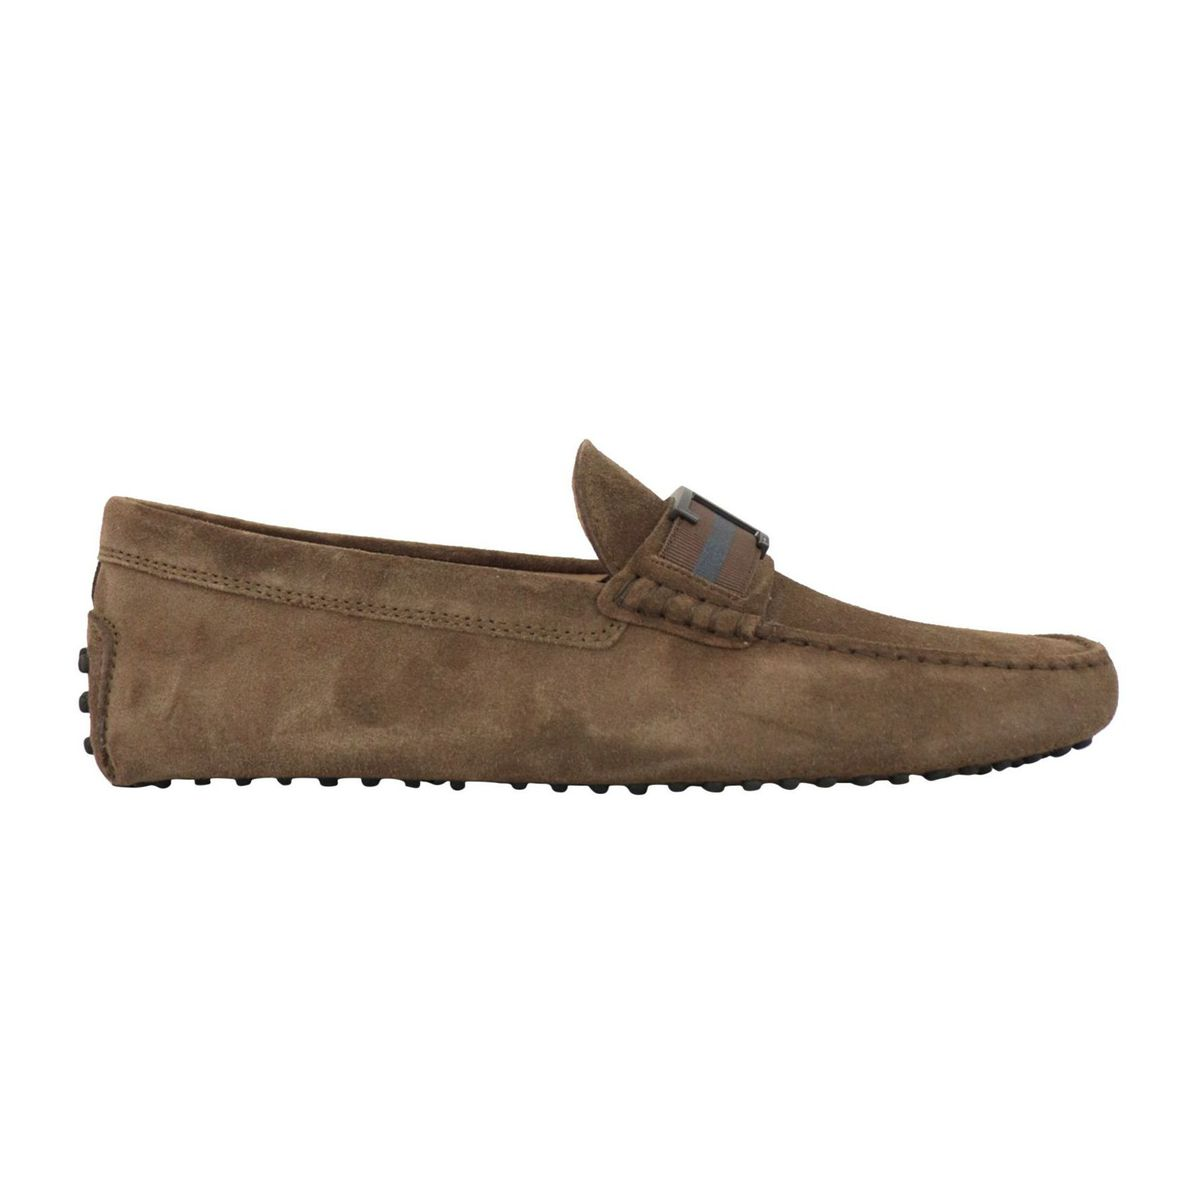 Suede moccasin with rubber sole Moro Tod's